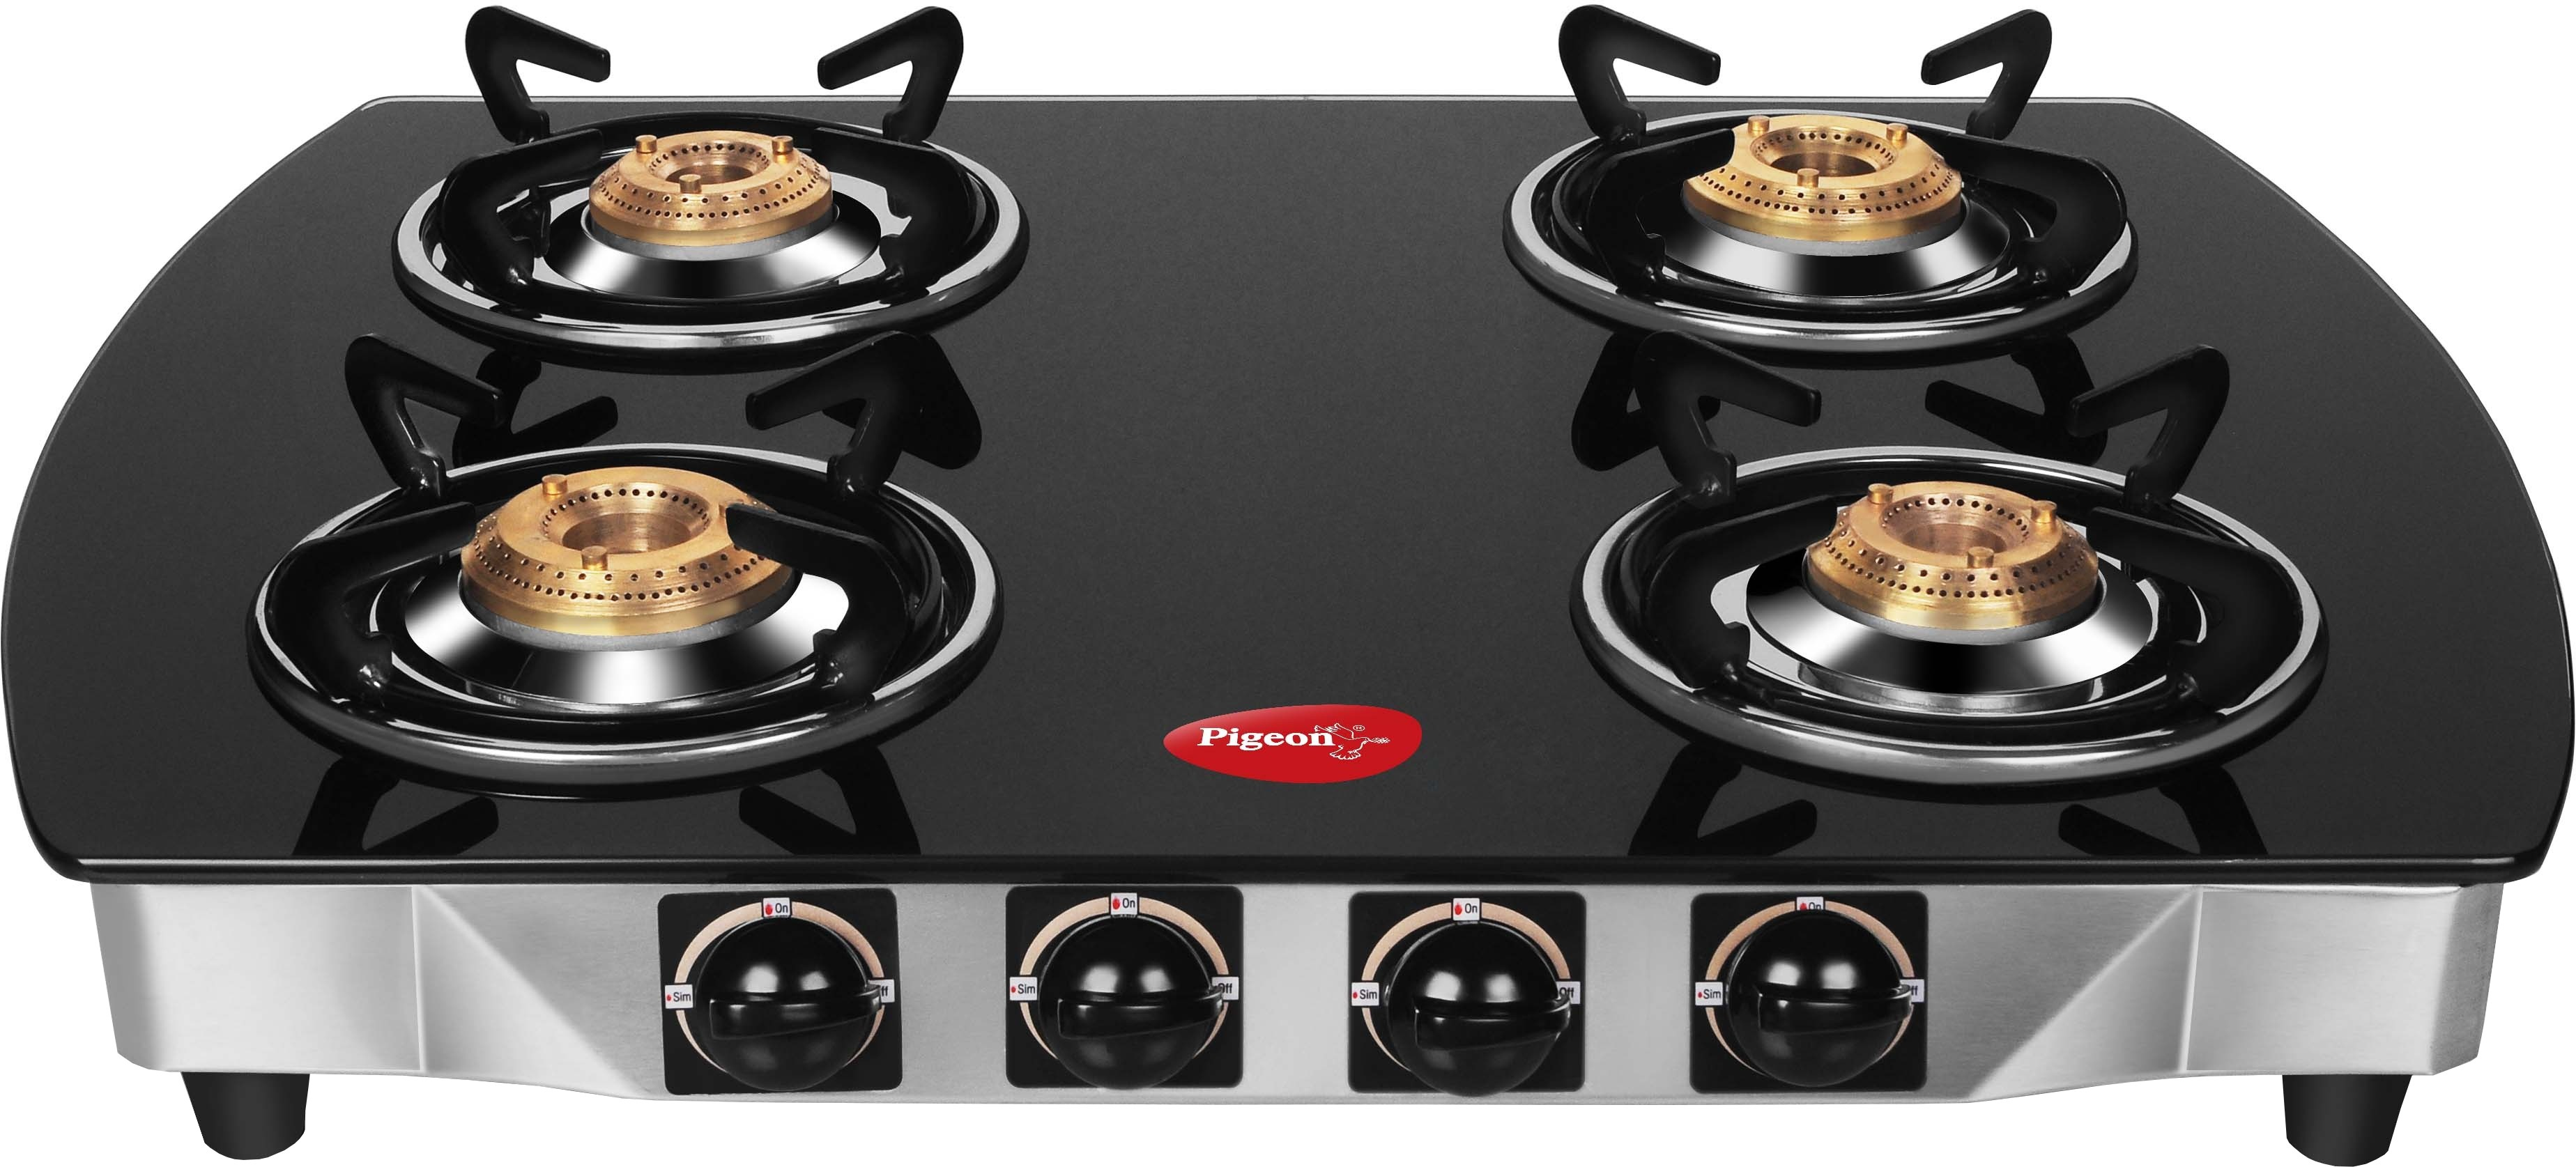 Deals | Up to 50% Off Gas Stoves